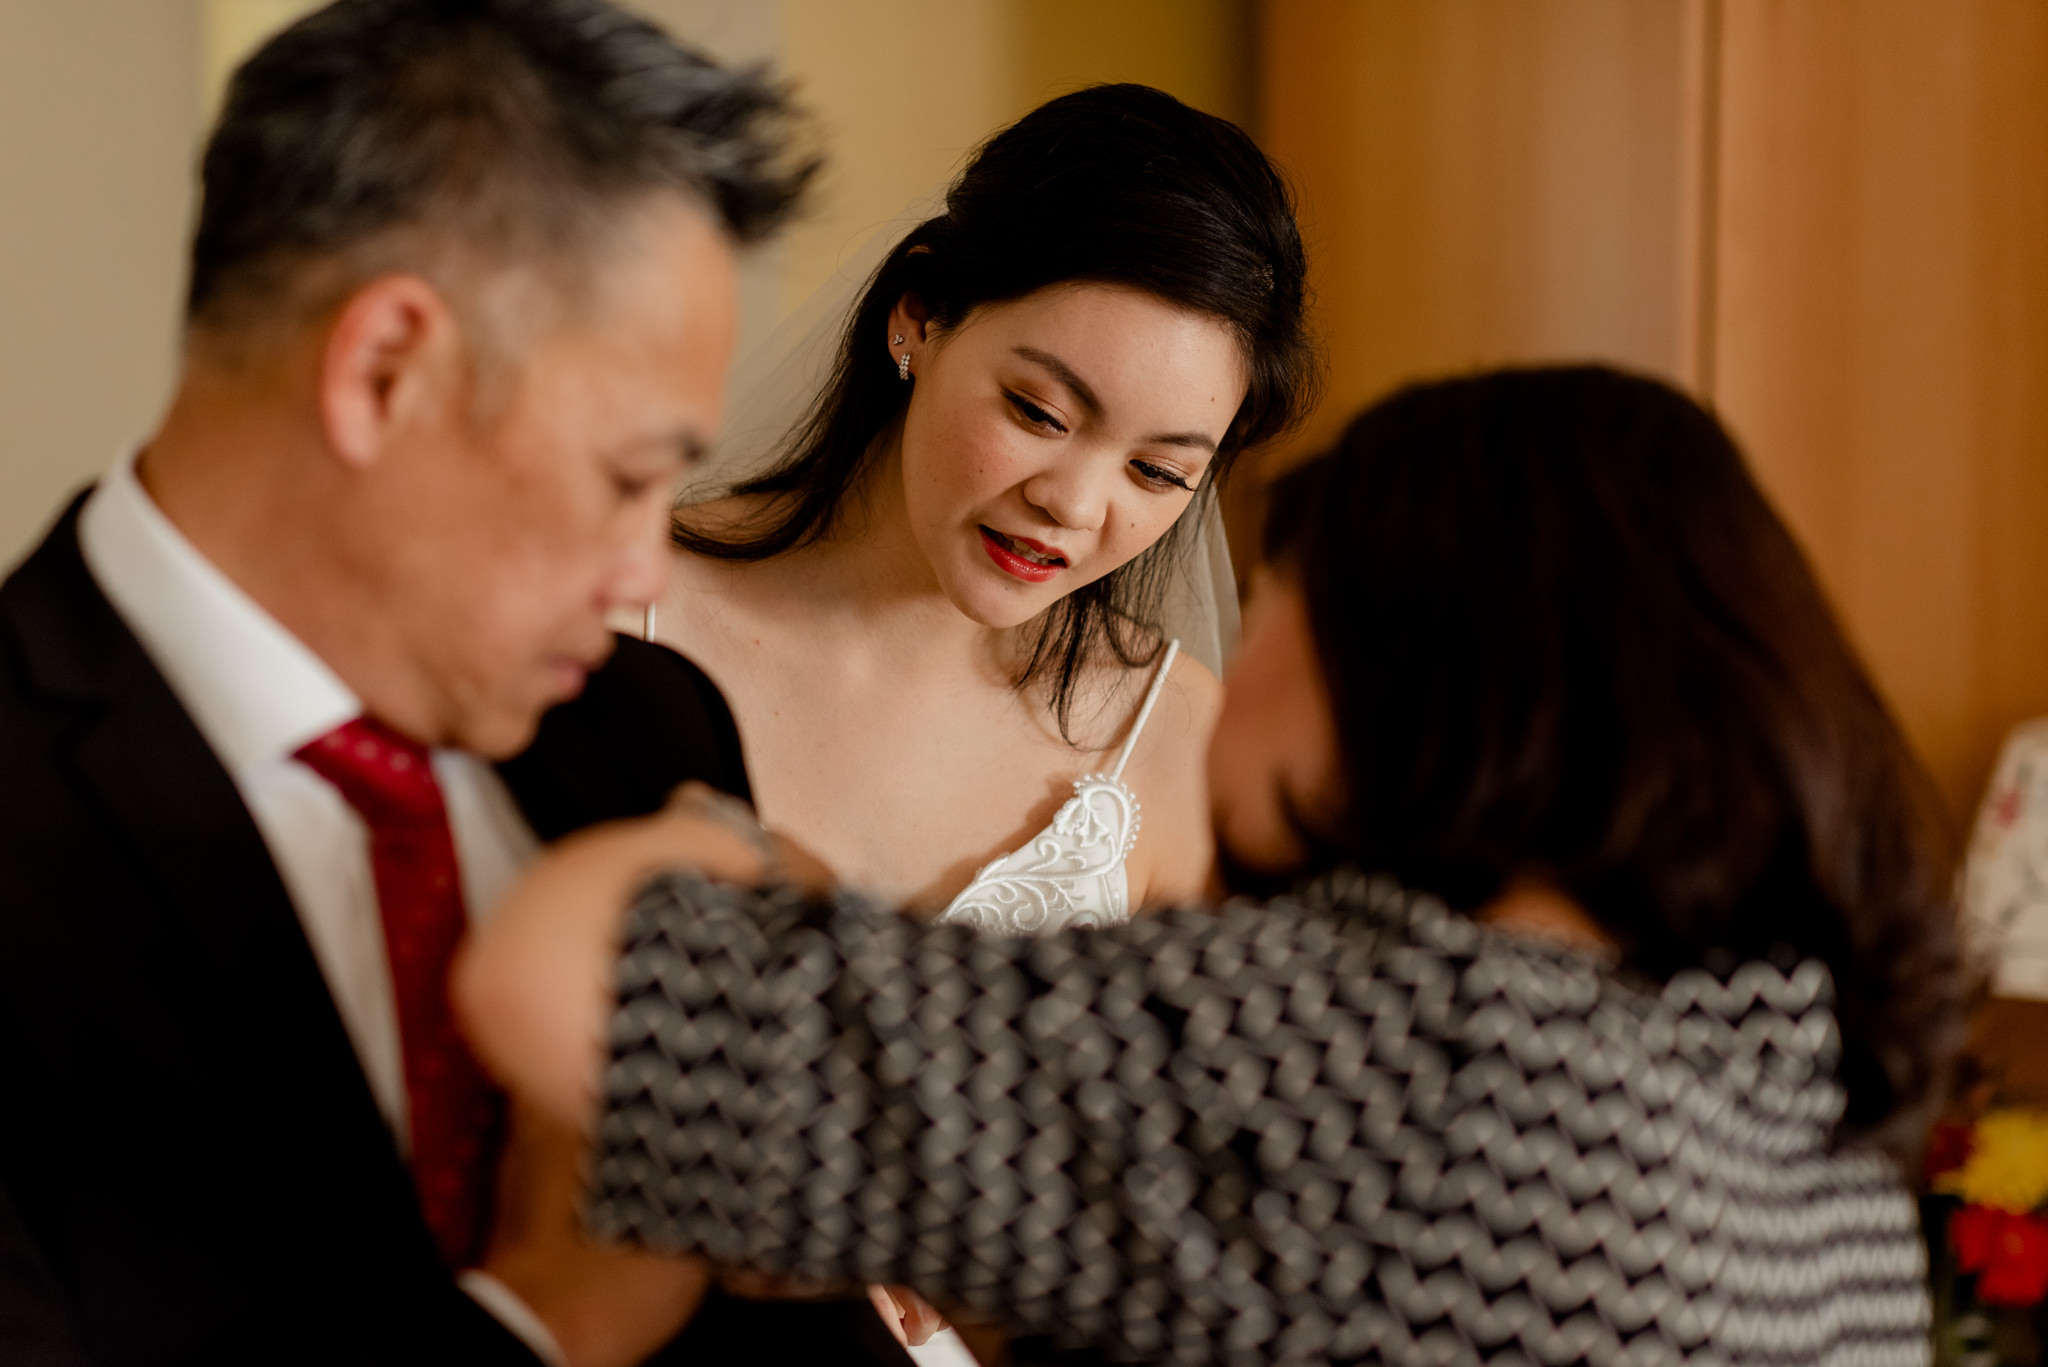 An Asian bride looks at her parents attempting to put a boutineer on a suit